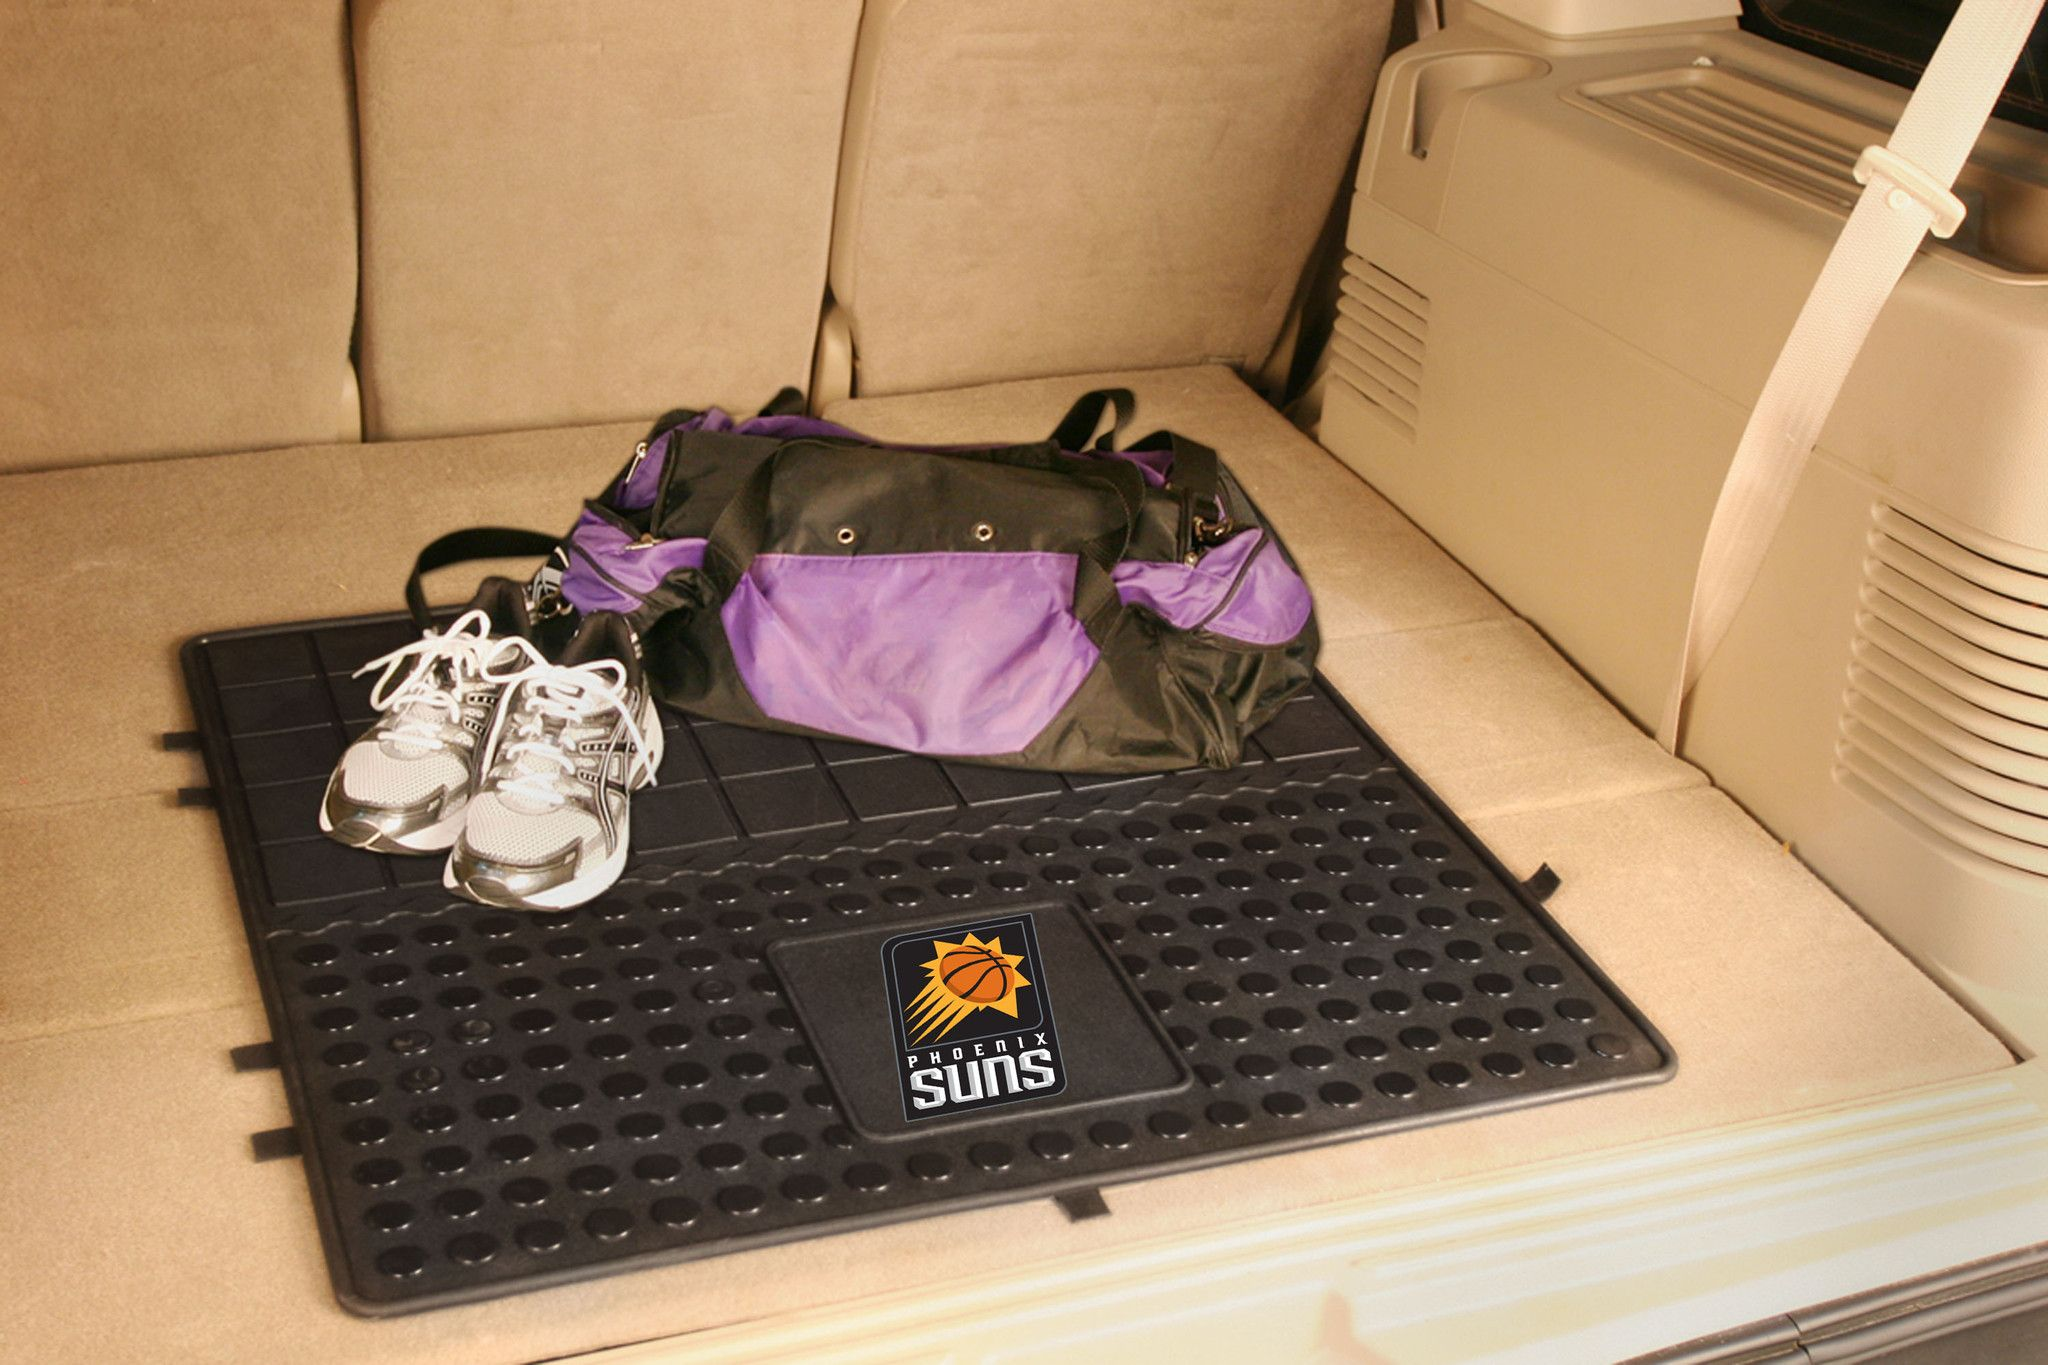 "NBA - Phoenix Suns Heavy Duty Vinyl Cargo Mat - Protect your vehicle's flooring and your cargo. Display your team pride with cargo mats by FANMATS. 100% heavy duty vinyl construction with non-skid backing ensures a rugged and safe product. Universal fit makes it ideal for cars, trucks, SUVs, and RVs. The officially licensed design in true team colors are permanently molded for longevity.FANMATS Series: CARGOVINTeam Series: NBA - Phoenix SunsProduct Dimensions: 31""x31""Shipping Dimensions…"